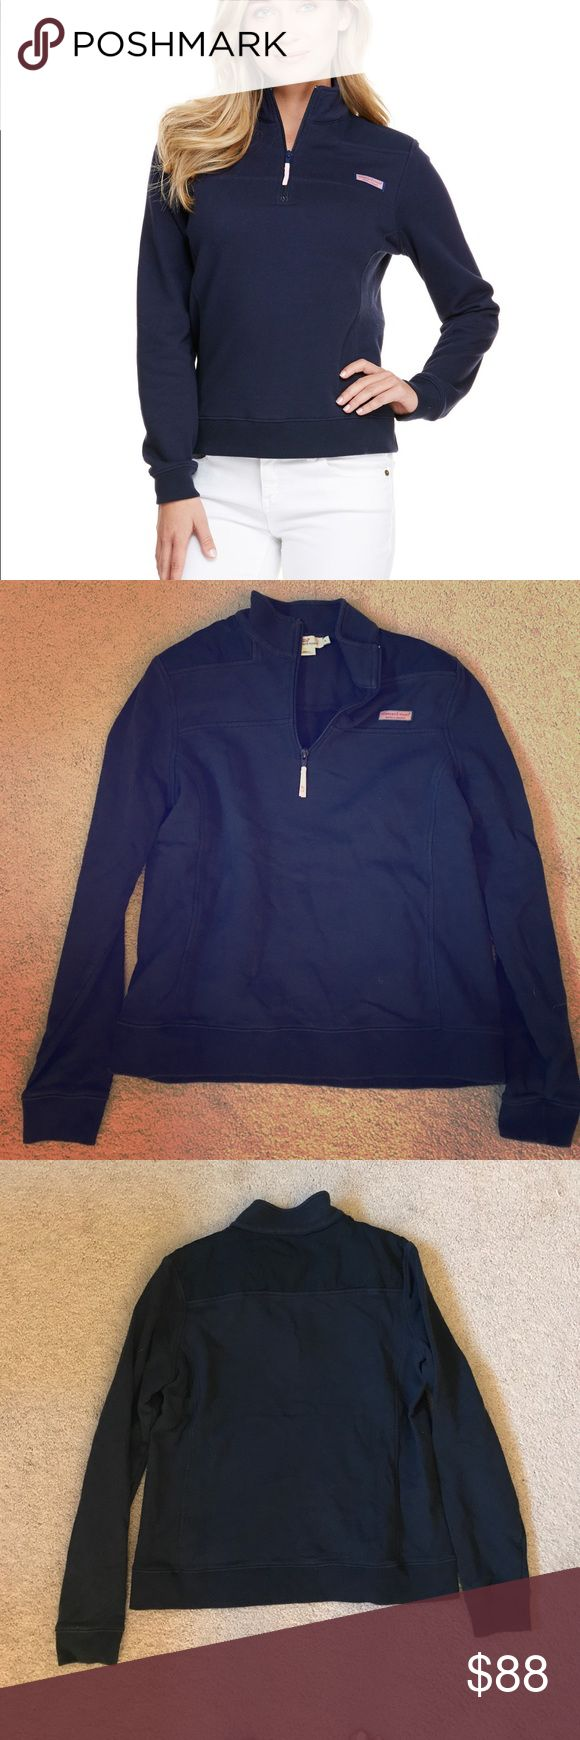 Vineyard Vines Shep Shirt Pullover Worn and washed 1x! No trades, sorry! Vineyard Vines Sweaters